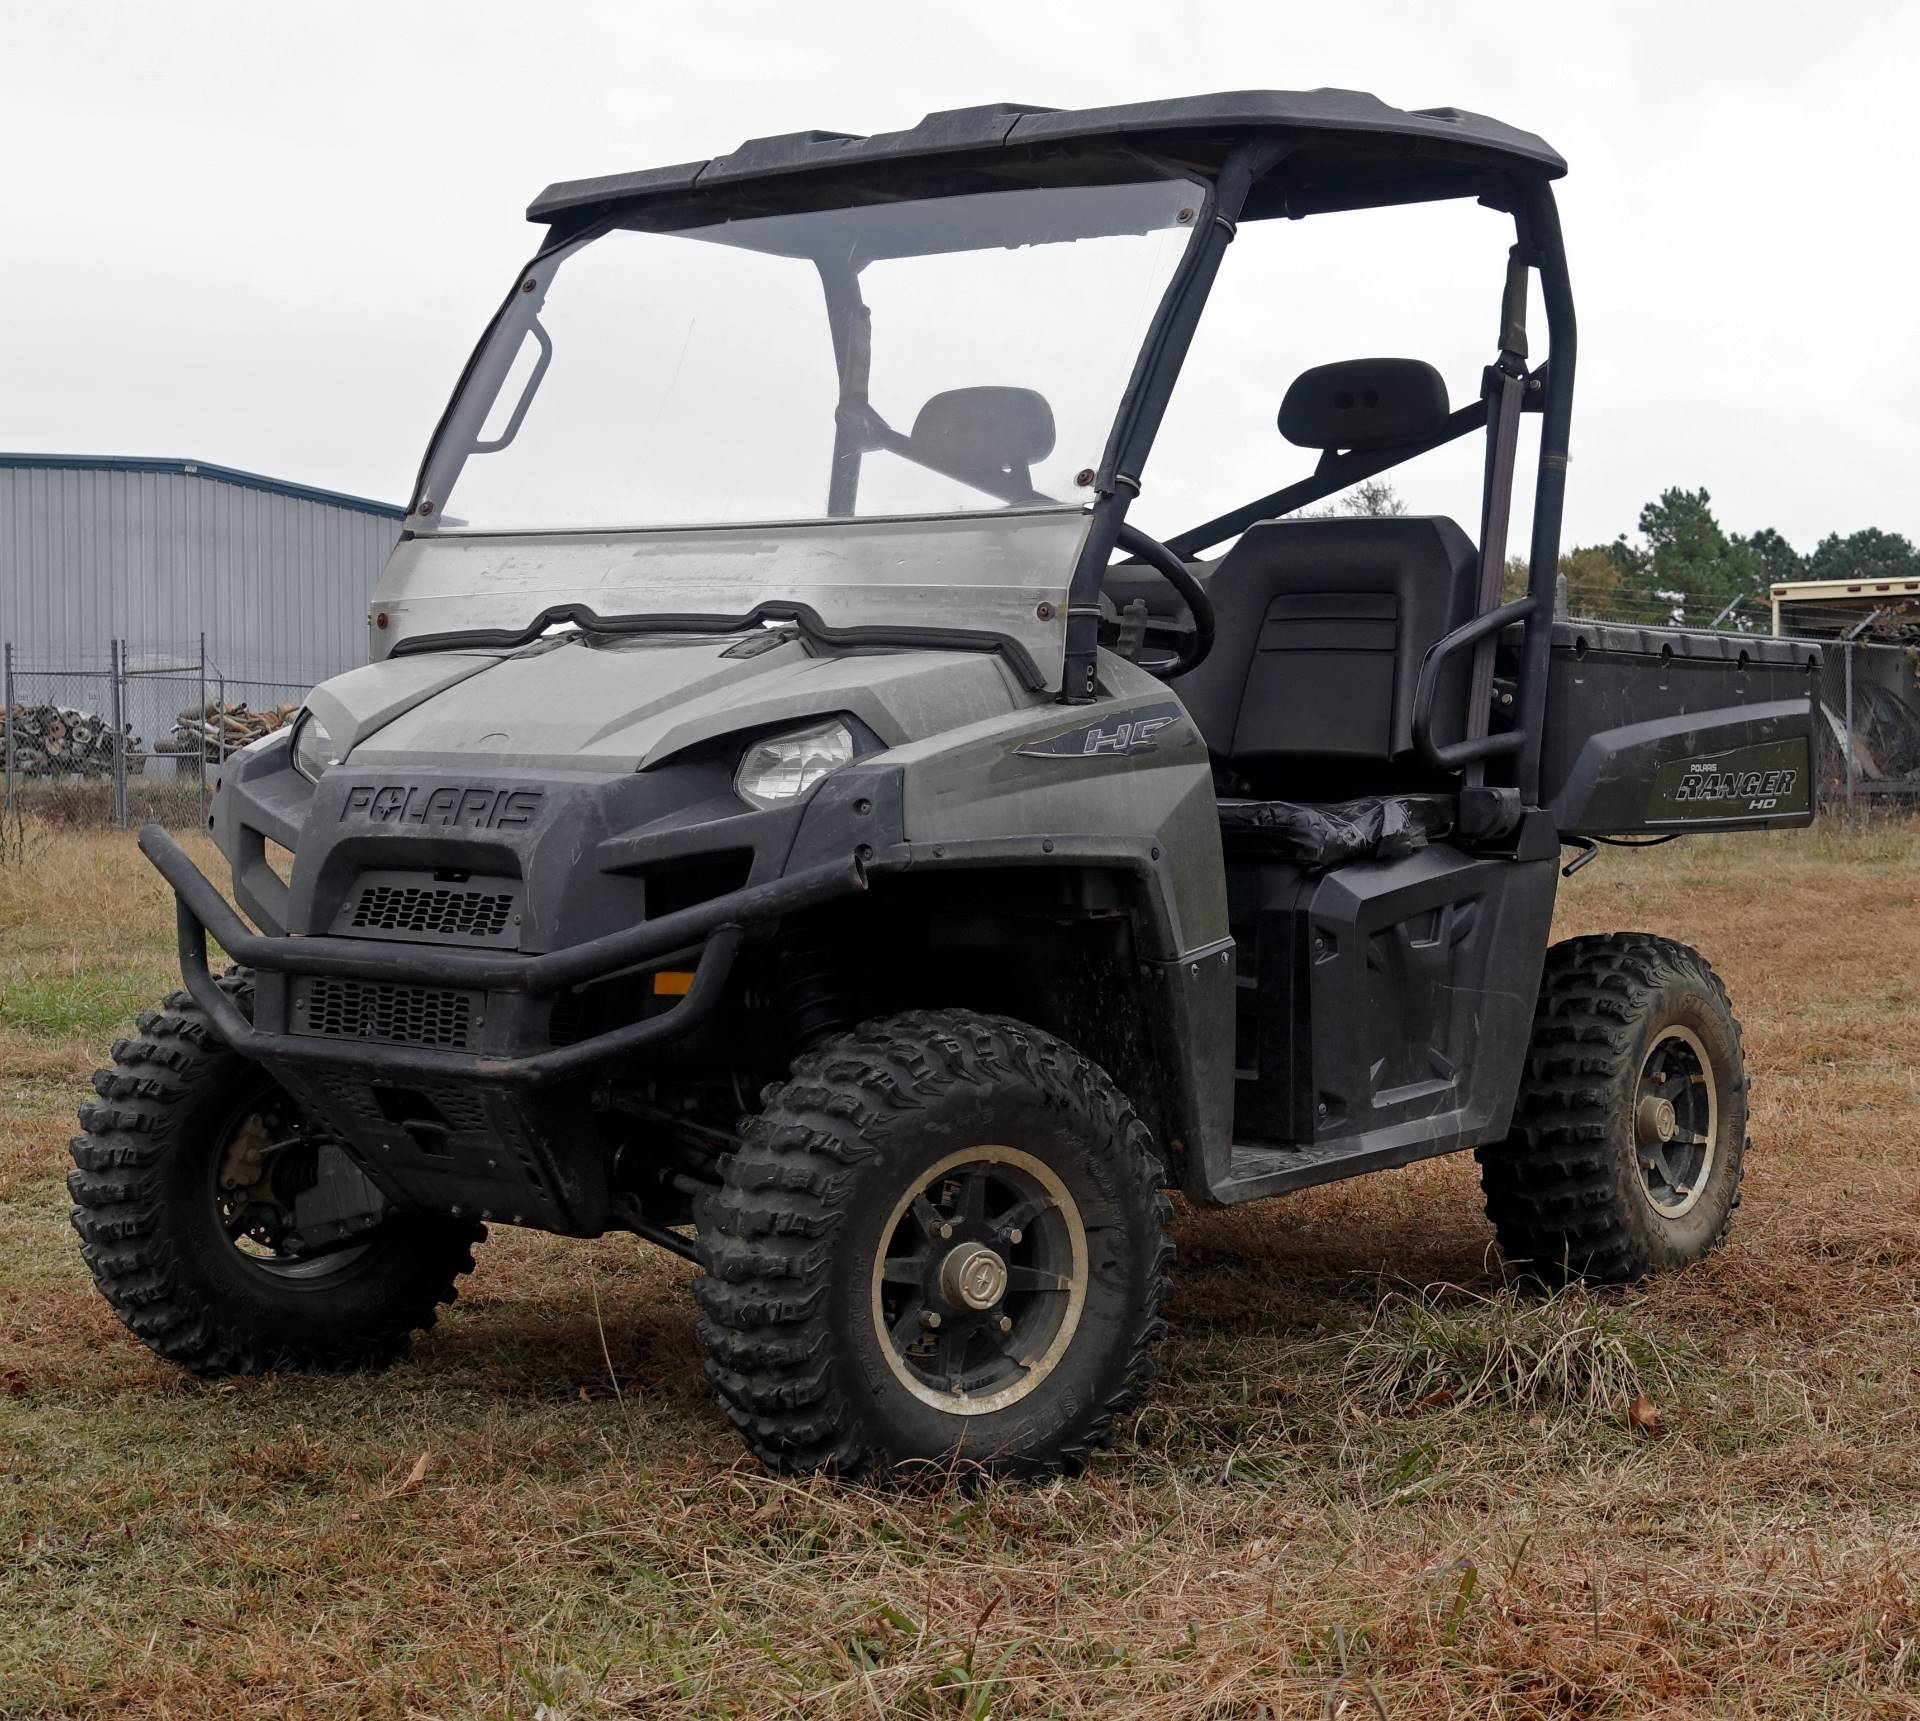 2010 Polaris Ranger® HD 800 EFI in Poteau, Oklahoma